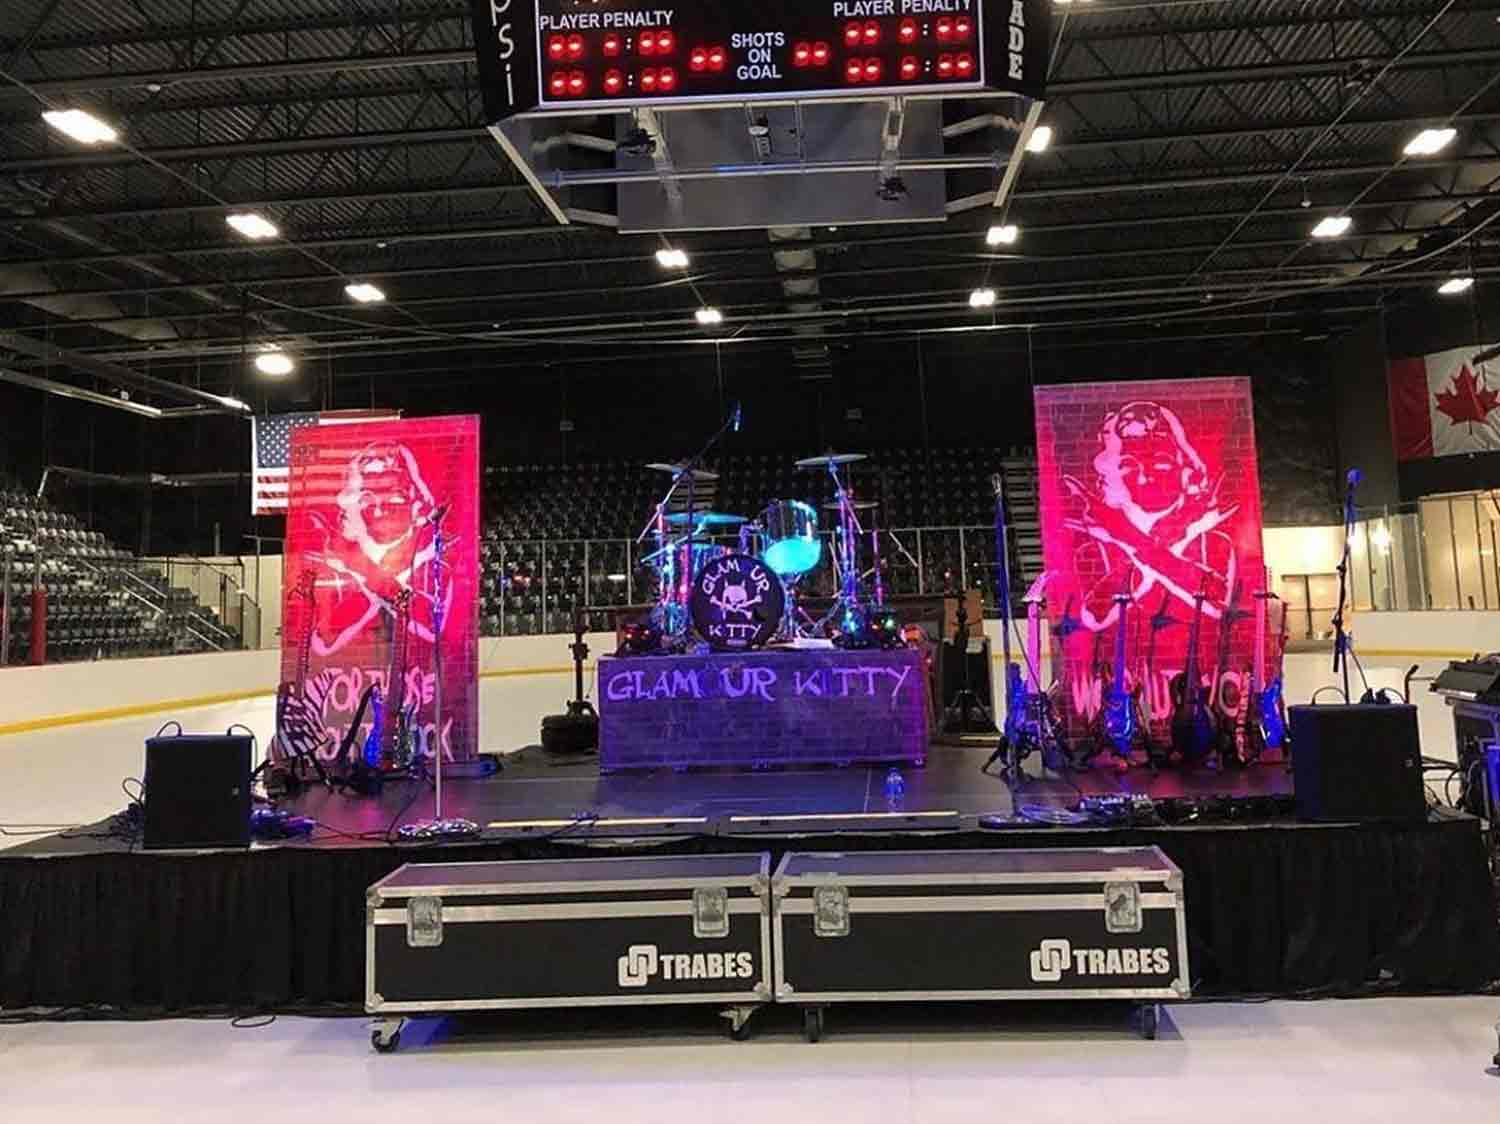 With EverBlock Flooring - you can convert an ice rink into a trade show or event!